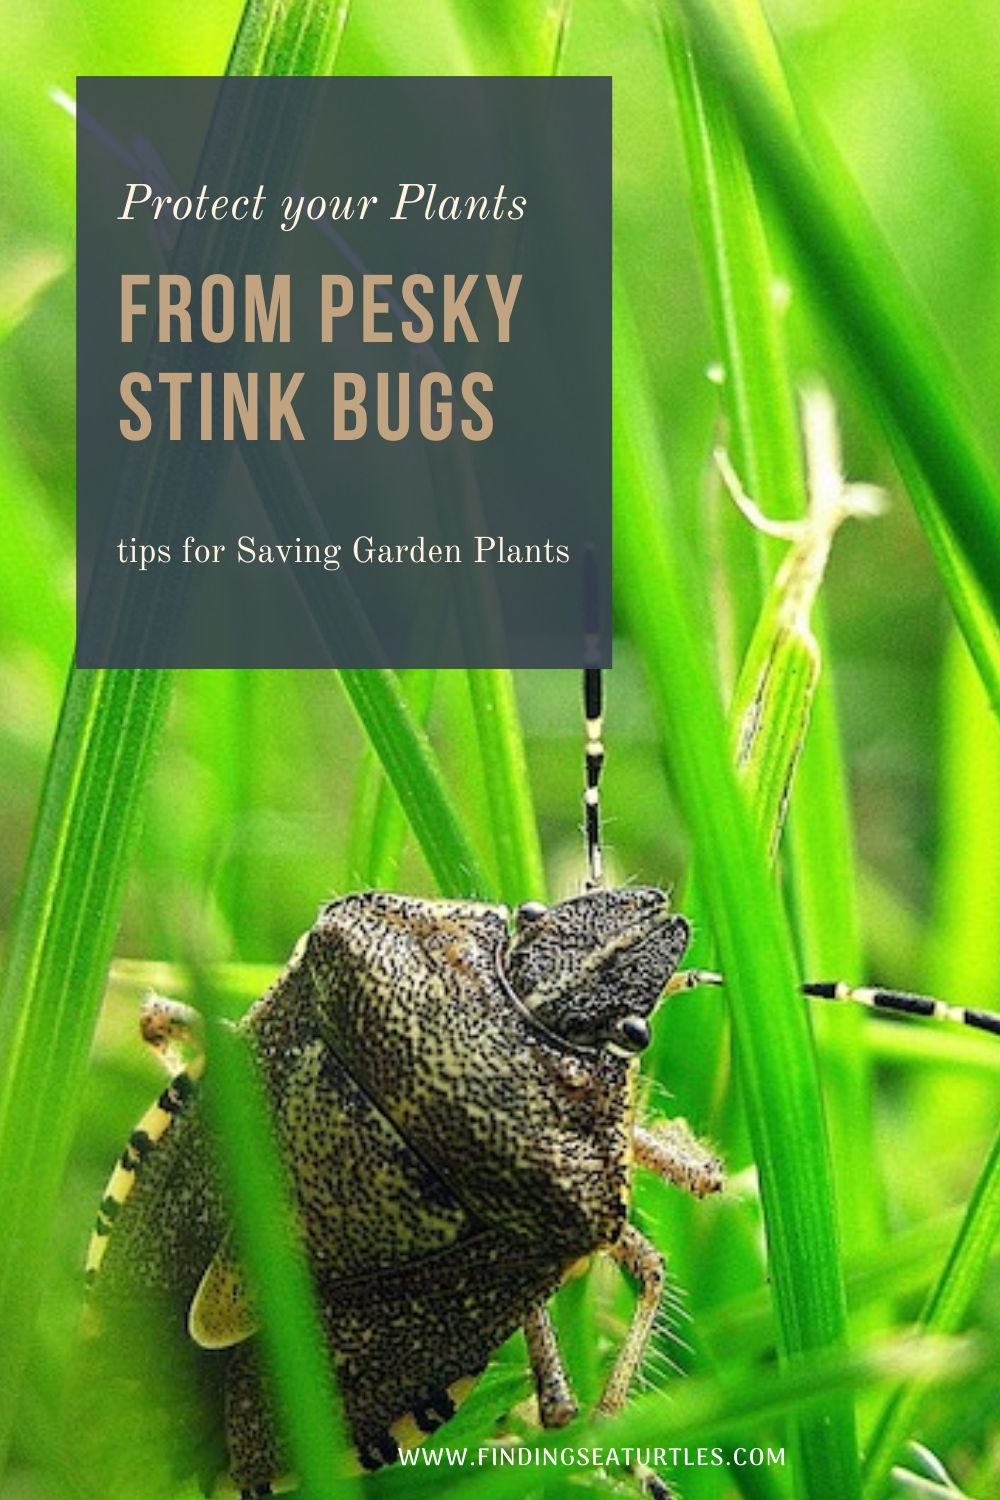 Protect your Plants from Pesky Stink Bugs tips for Saving Garden Plants #Garden #Plants #Gardening #GardenPests #StinkBugs #StoptheBMSB #ControltheStinkBug